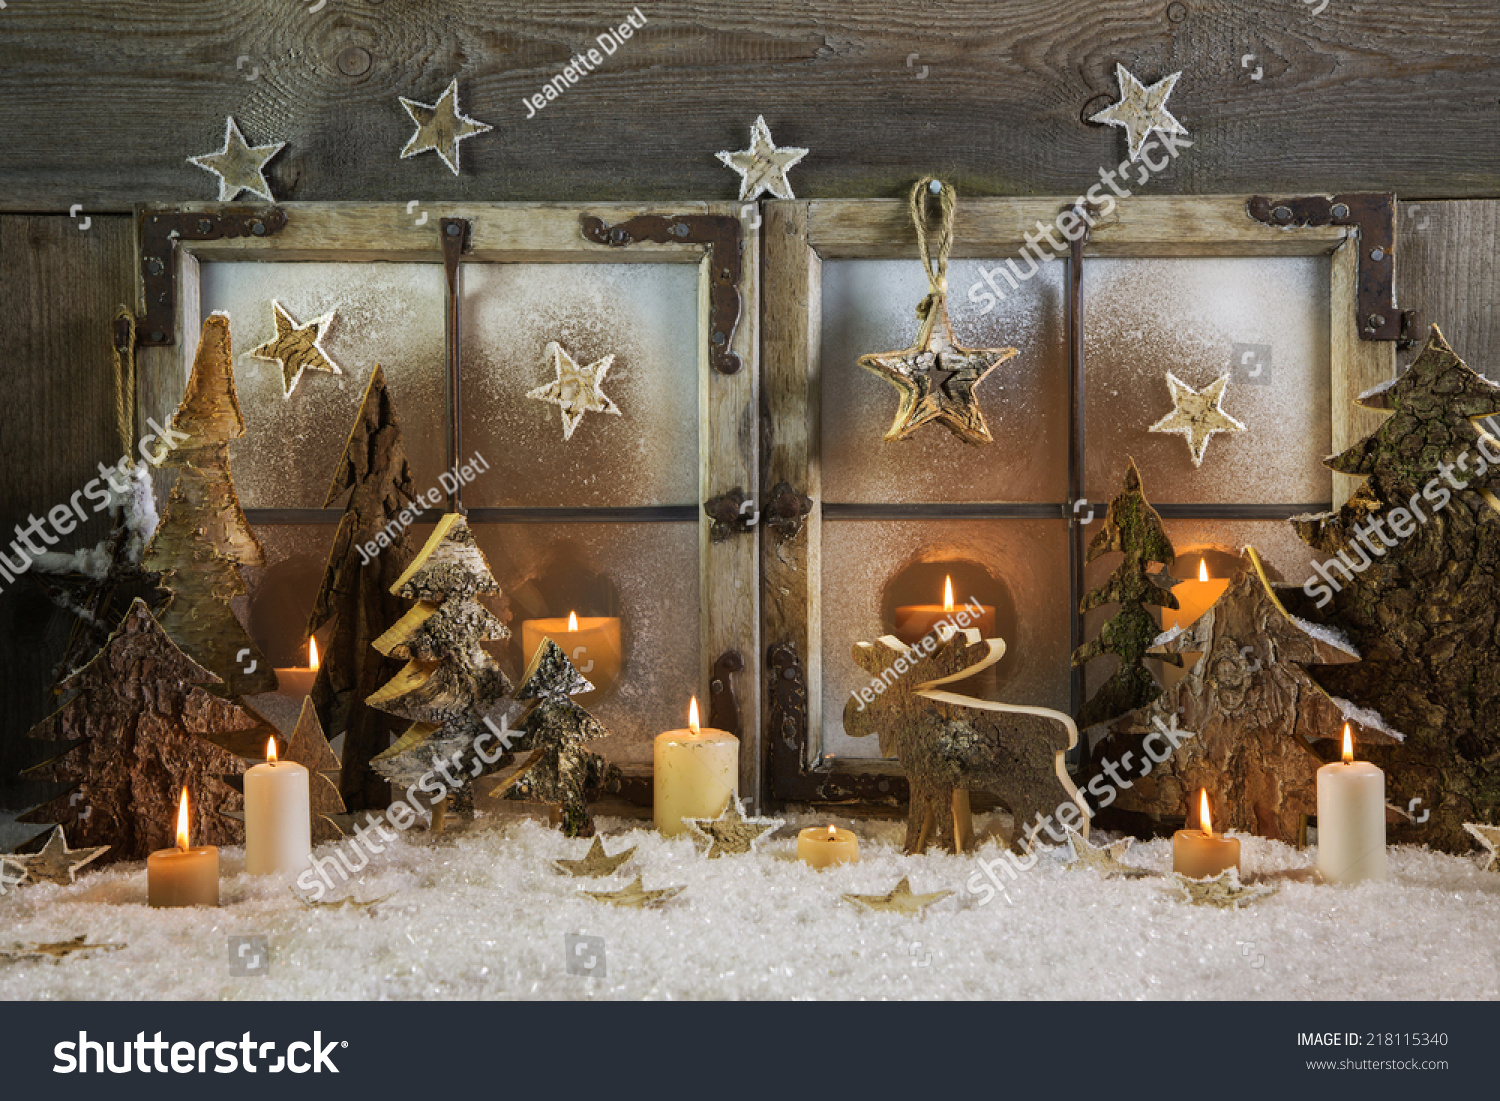 Wooden outdoor christmas decorations - Natural Handmade Christmas Decoration Of Wood Outdoor In The Window With Candles Idea For A